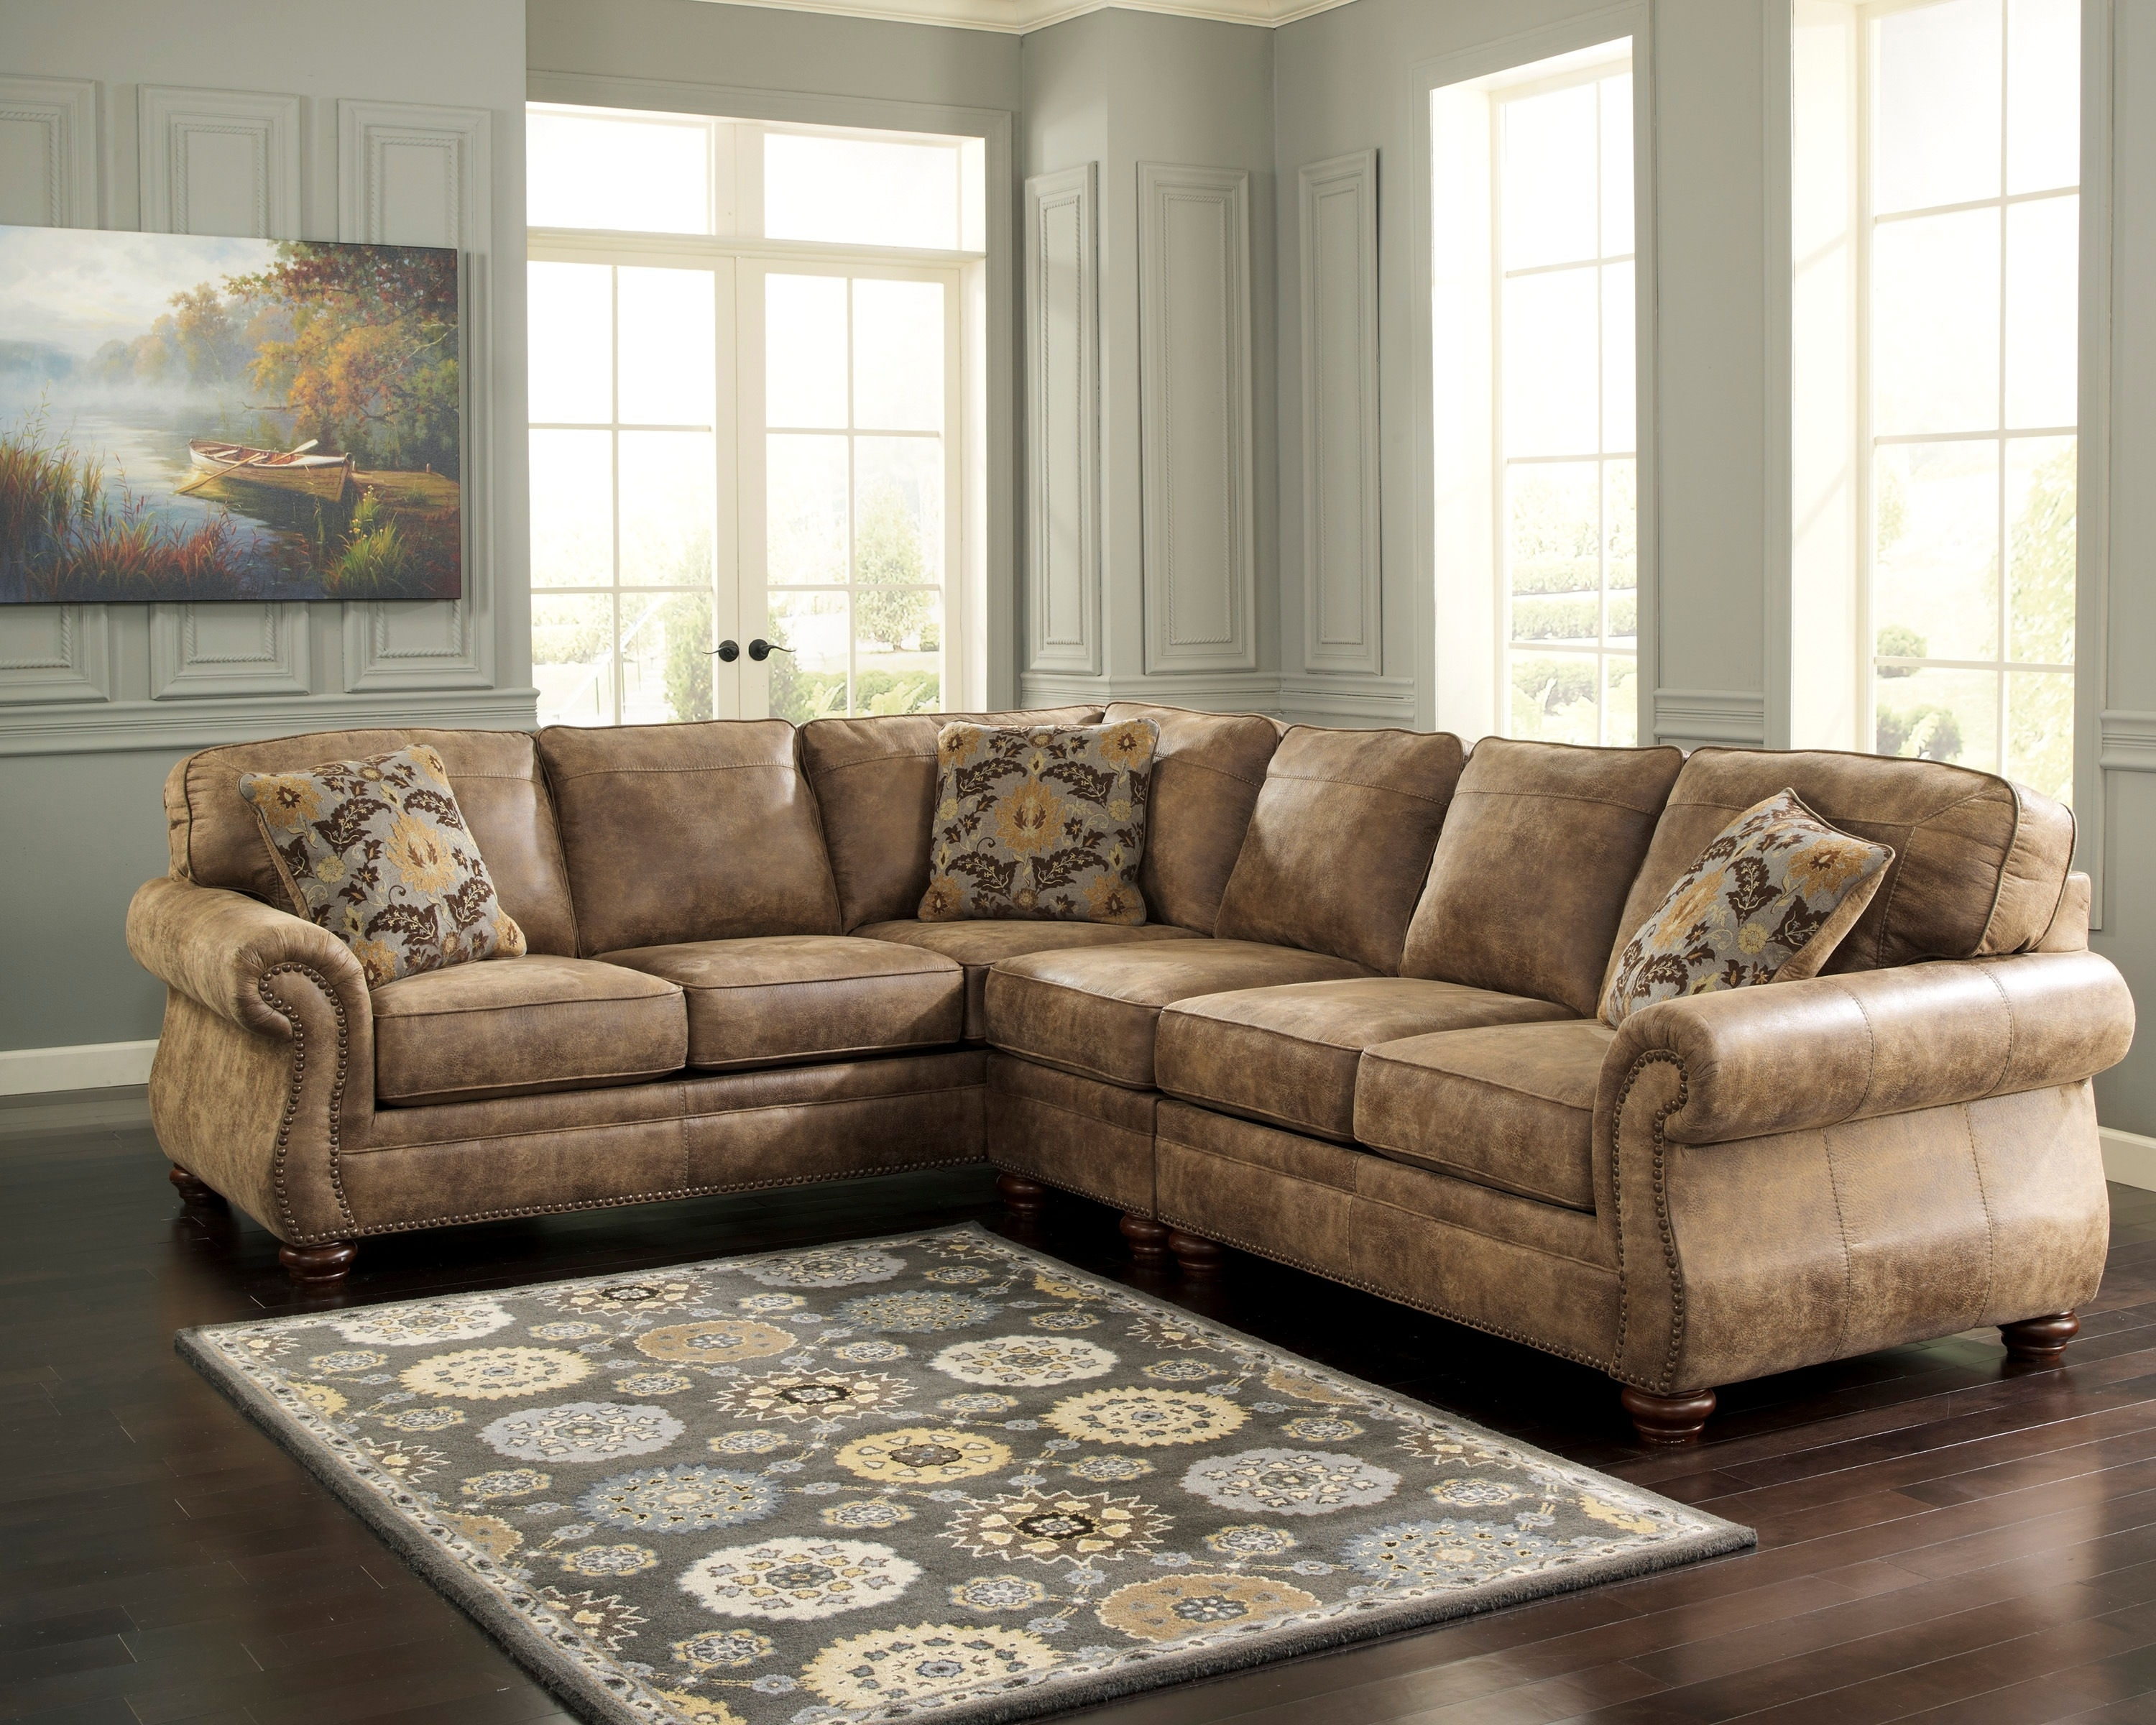 Laf Sofa Raf Loveseat | Baci Living Room Pertaining To Turdur 2 Piece Sectionals With Raf Loveseat (View 9 of 25)